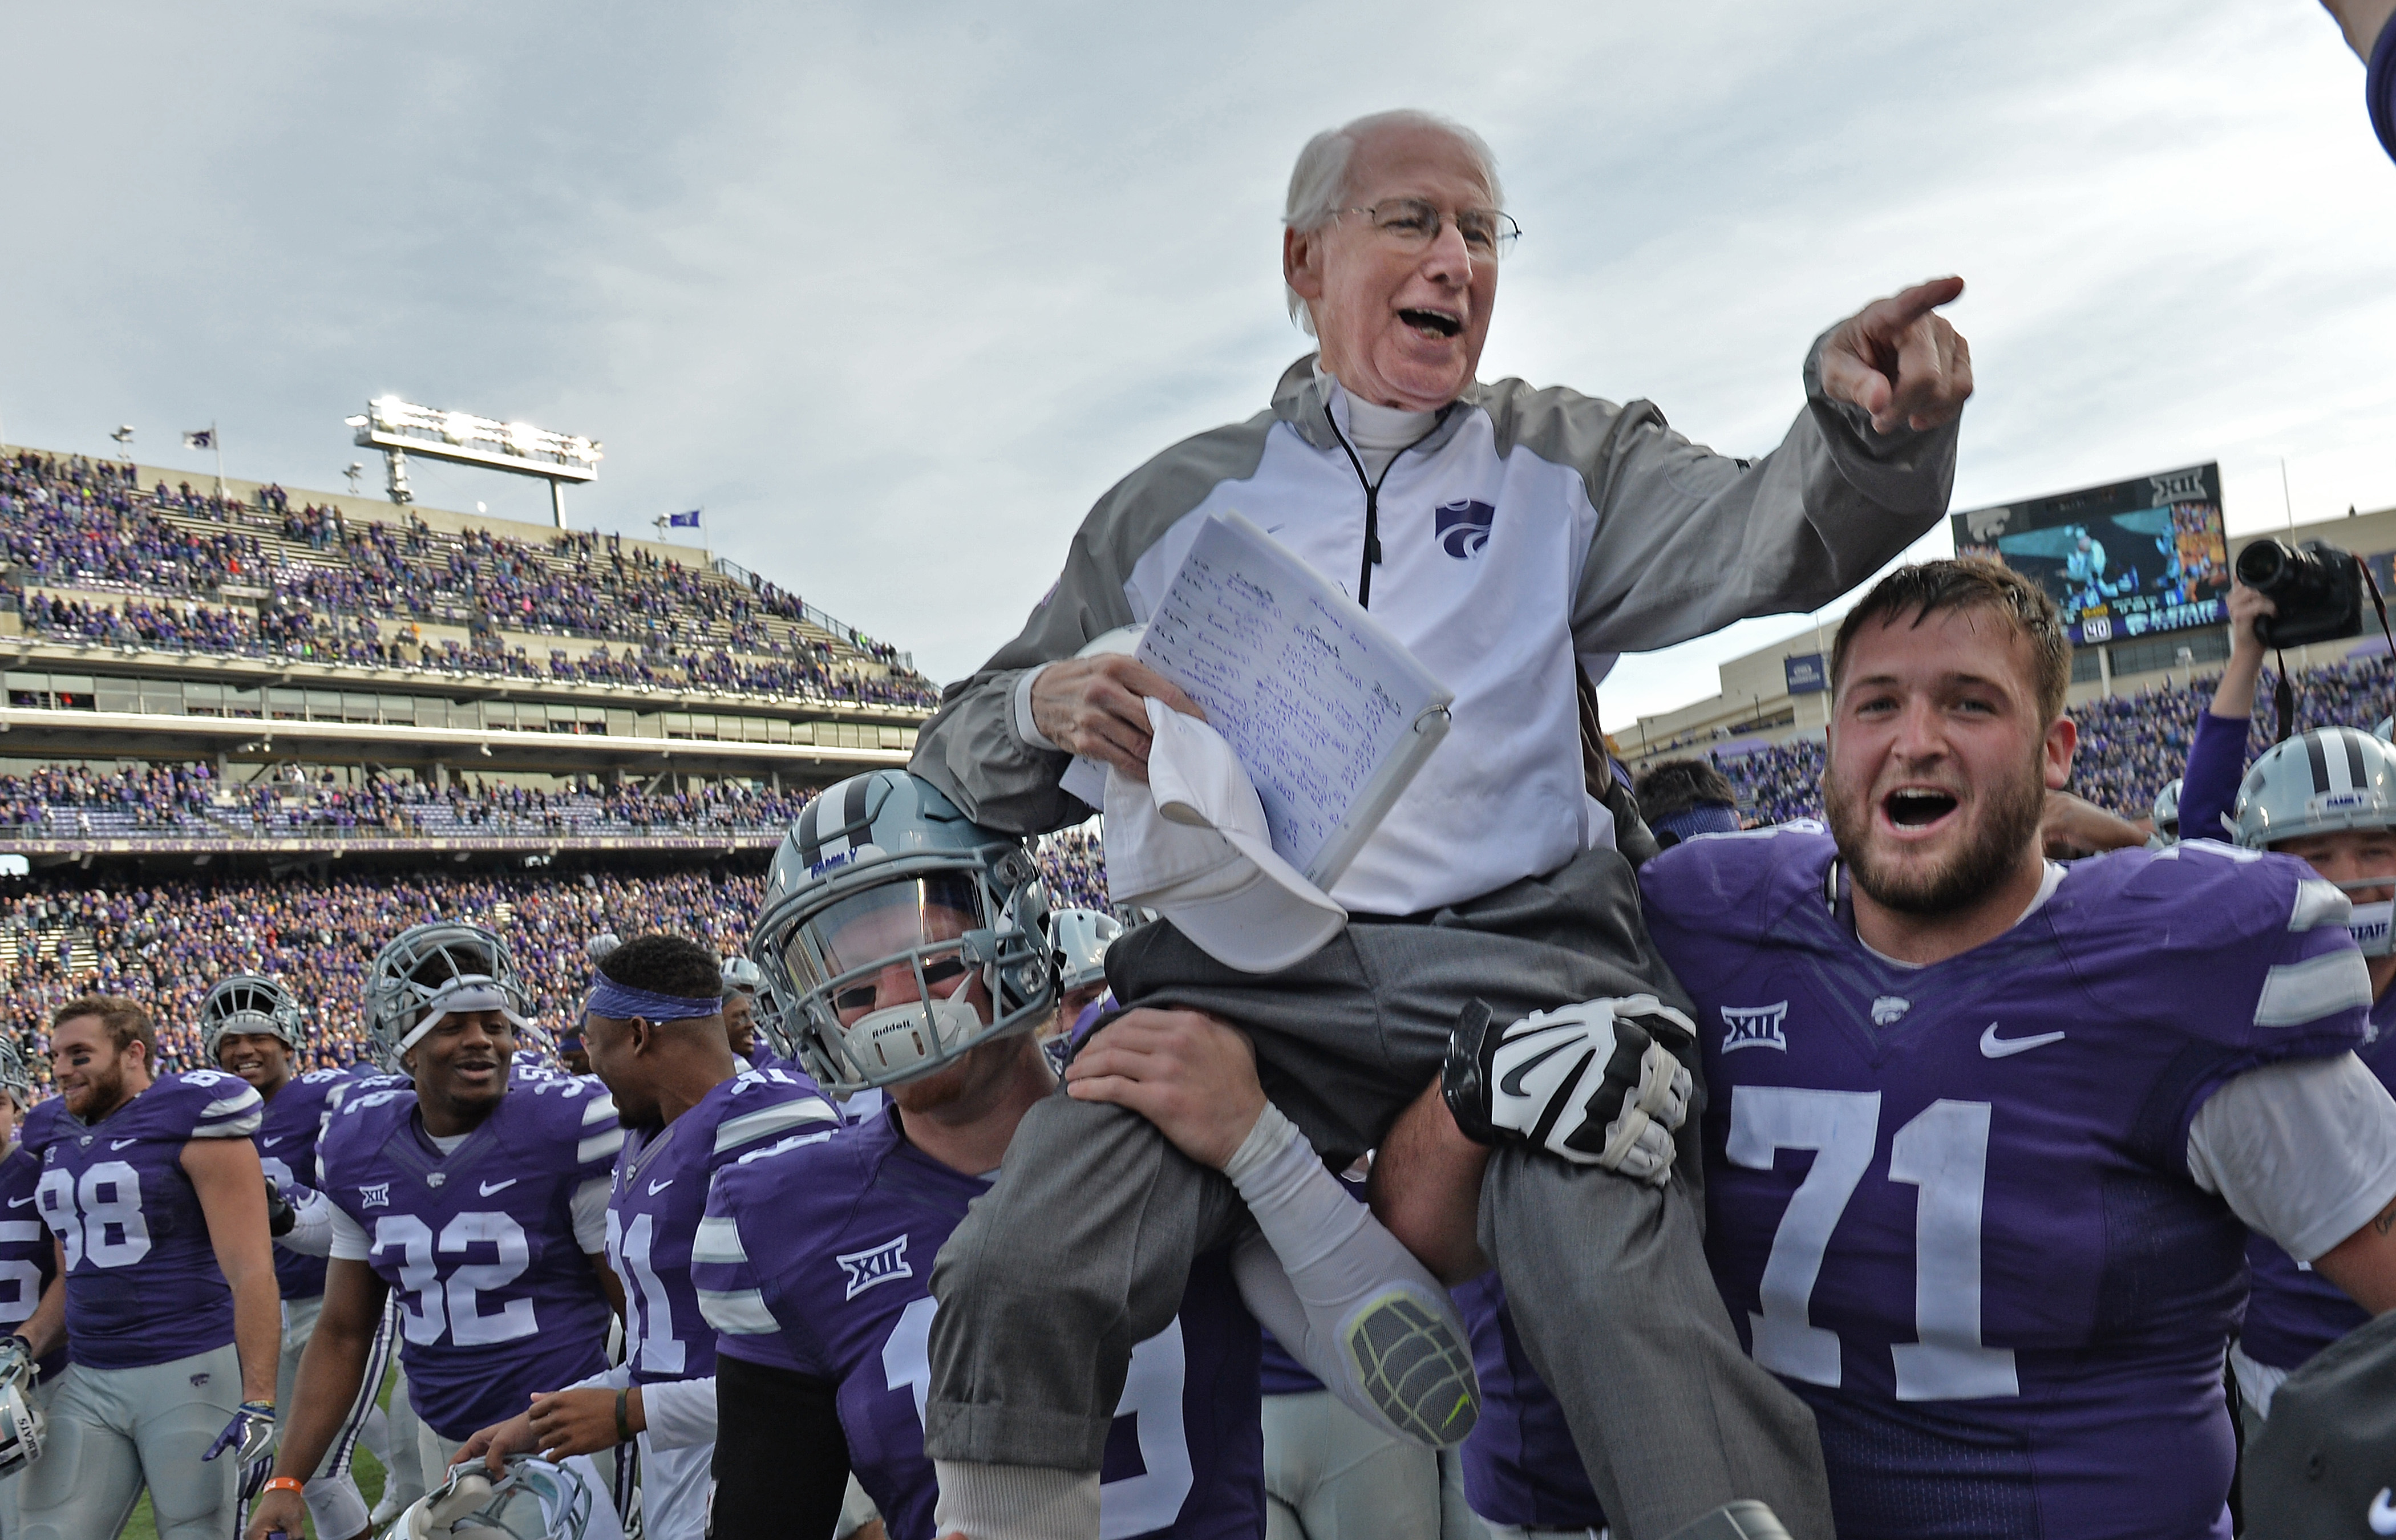 MANHATTAN, KS - NOVEMBER 26: Head coach Bill Snyder (C) of the Kansas State Wildcats gets carried off the field, after winning his 200th career game against the Kansas Jayhawks on November 26, 2016 at Bill Snyder Family Stadium in Manhattan, Kansas. (Photo by Peter G. Aiken/Getty Images)